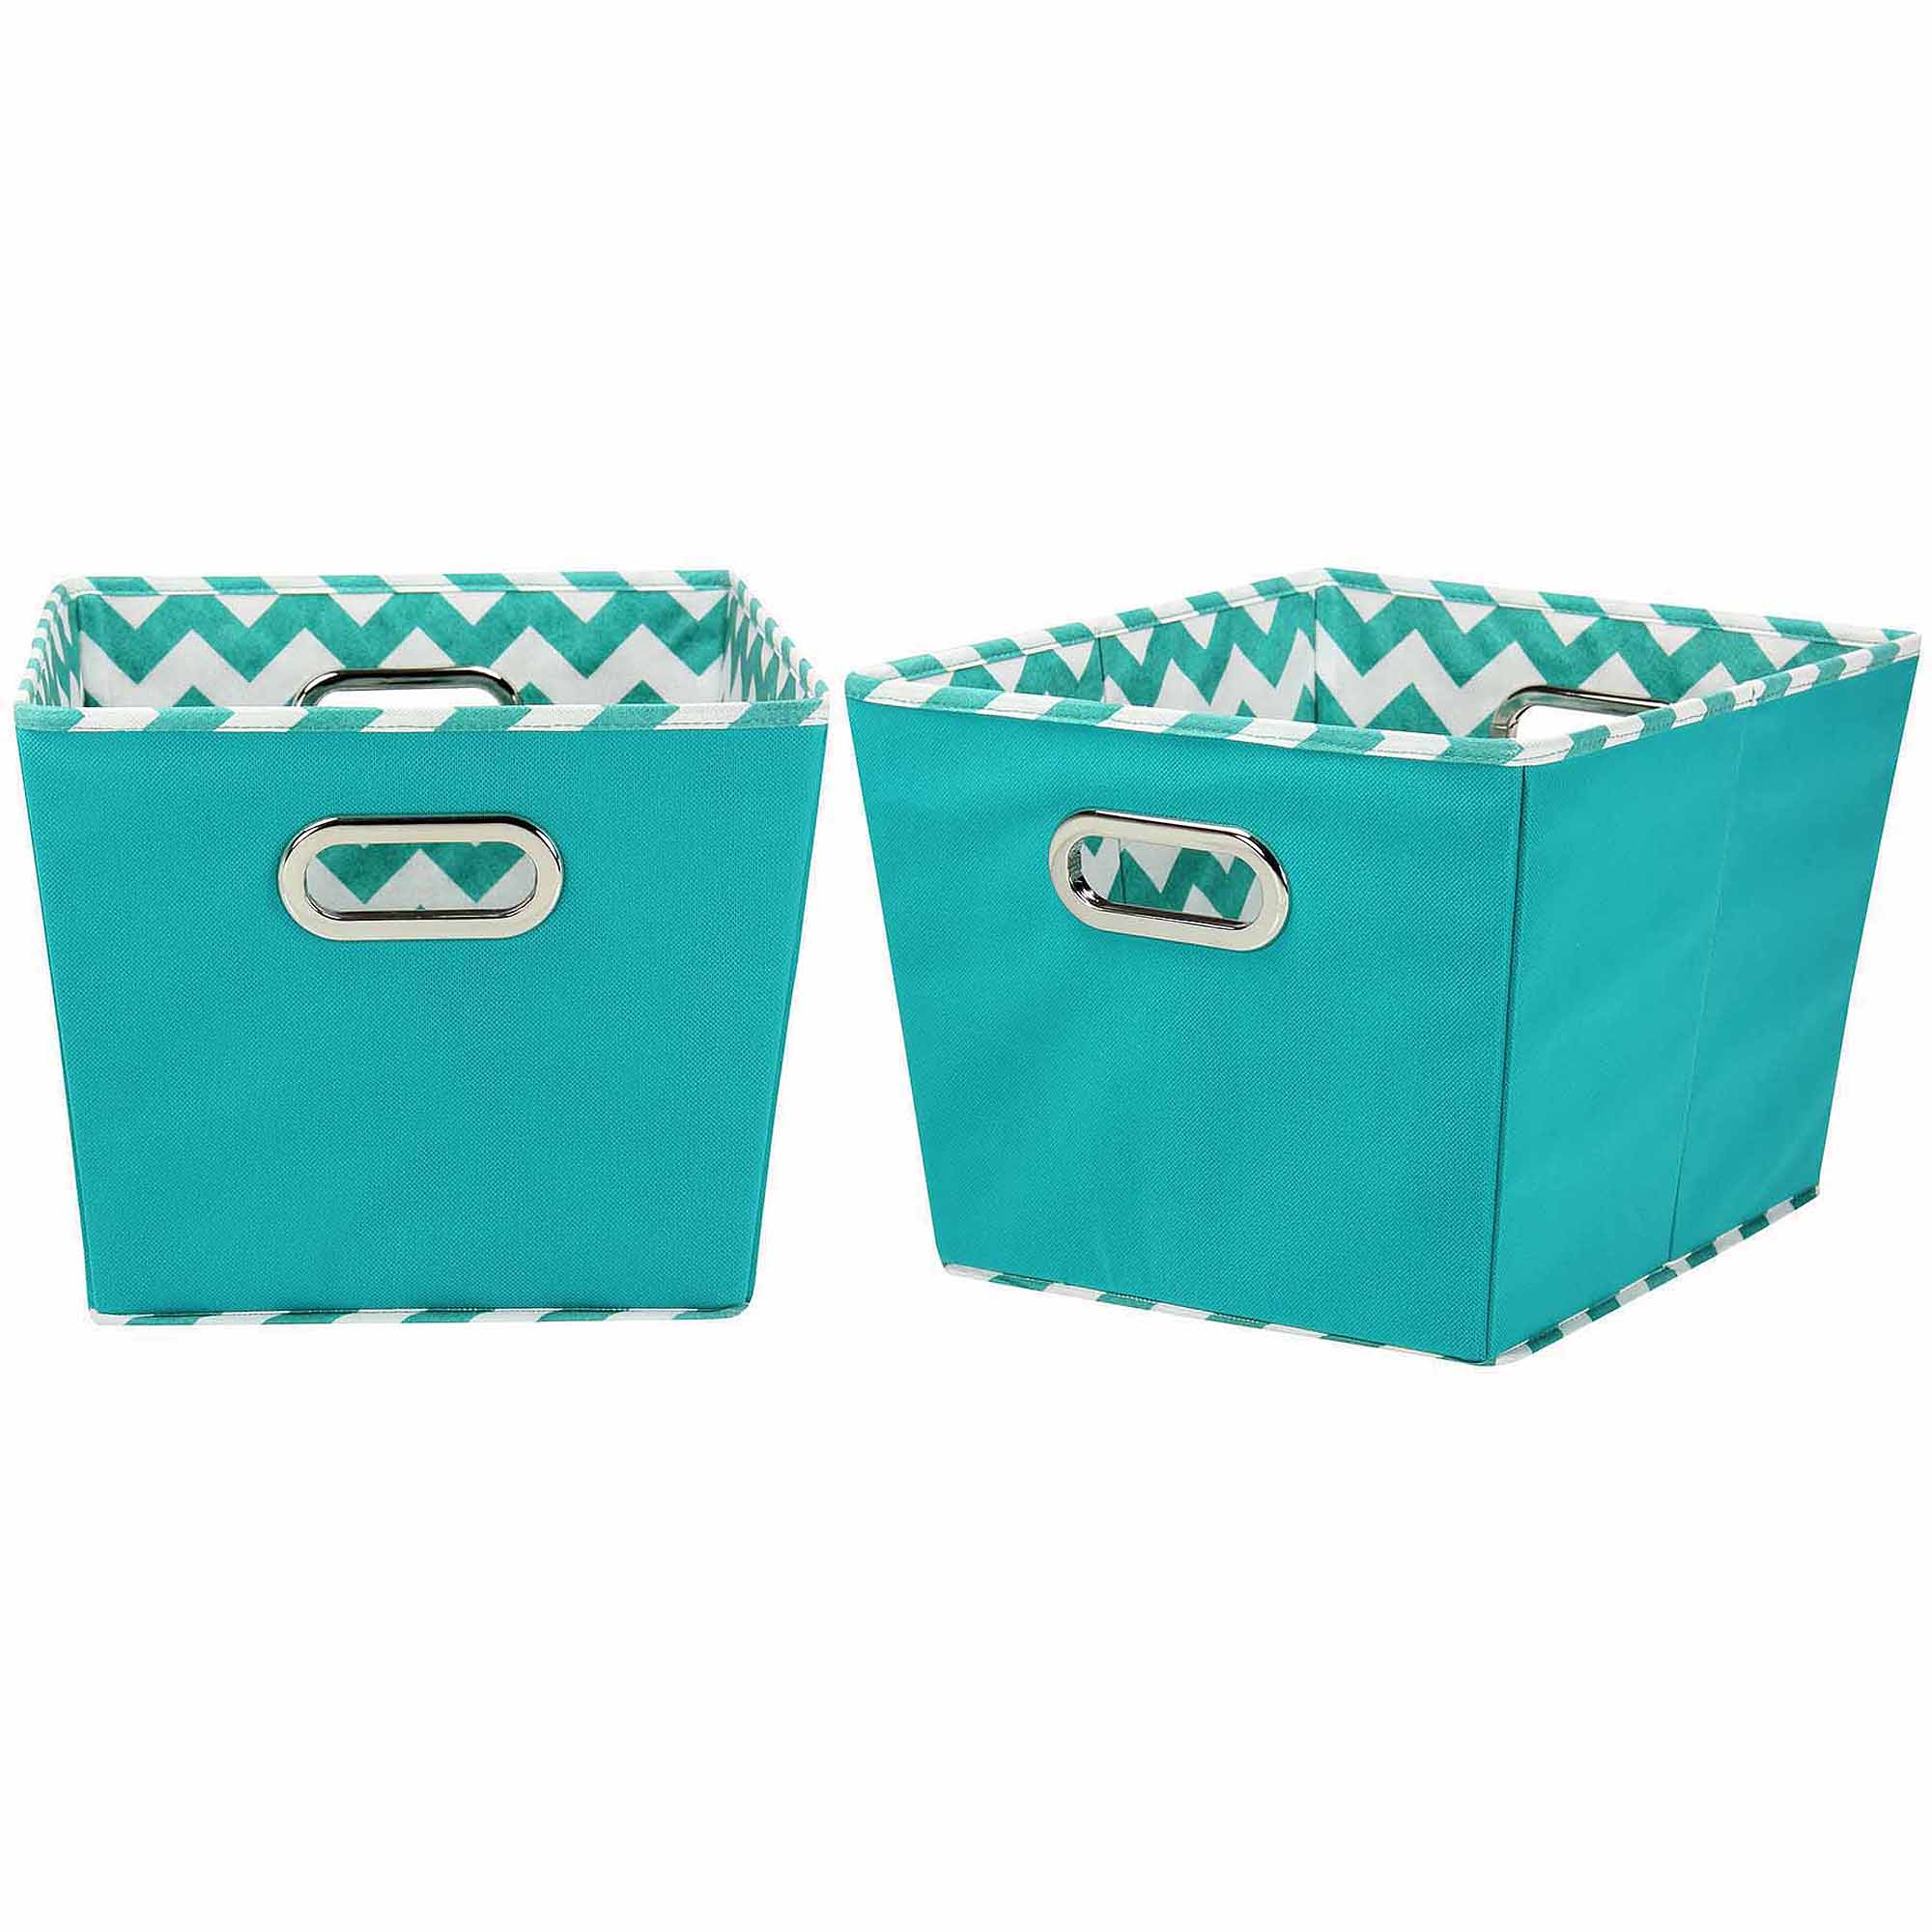 Household Essentials Medium Decorative Storage Bins 2pk Aqua and Chevron  sc 1 st  Walmart & Household Essentials Medium Decorative Storage Bins 2pk Aqua and ...